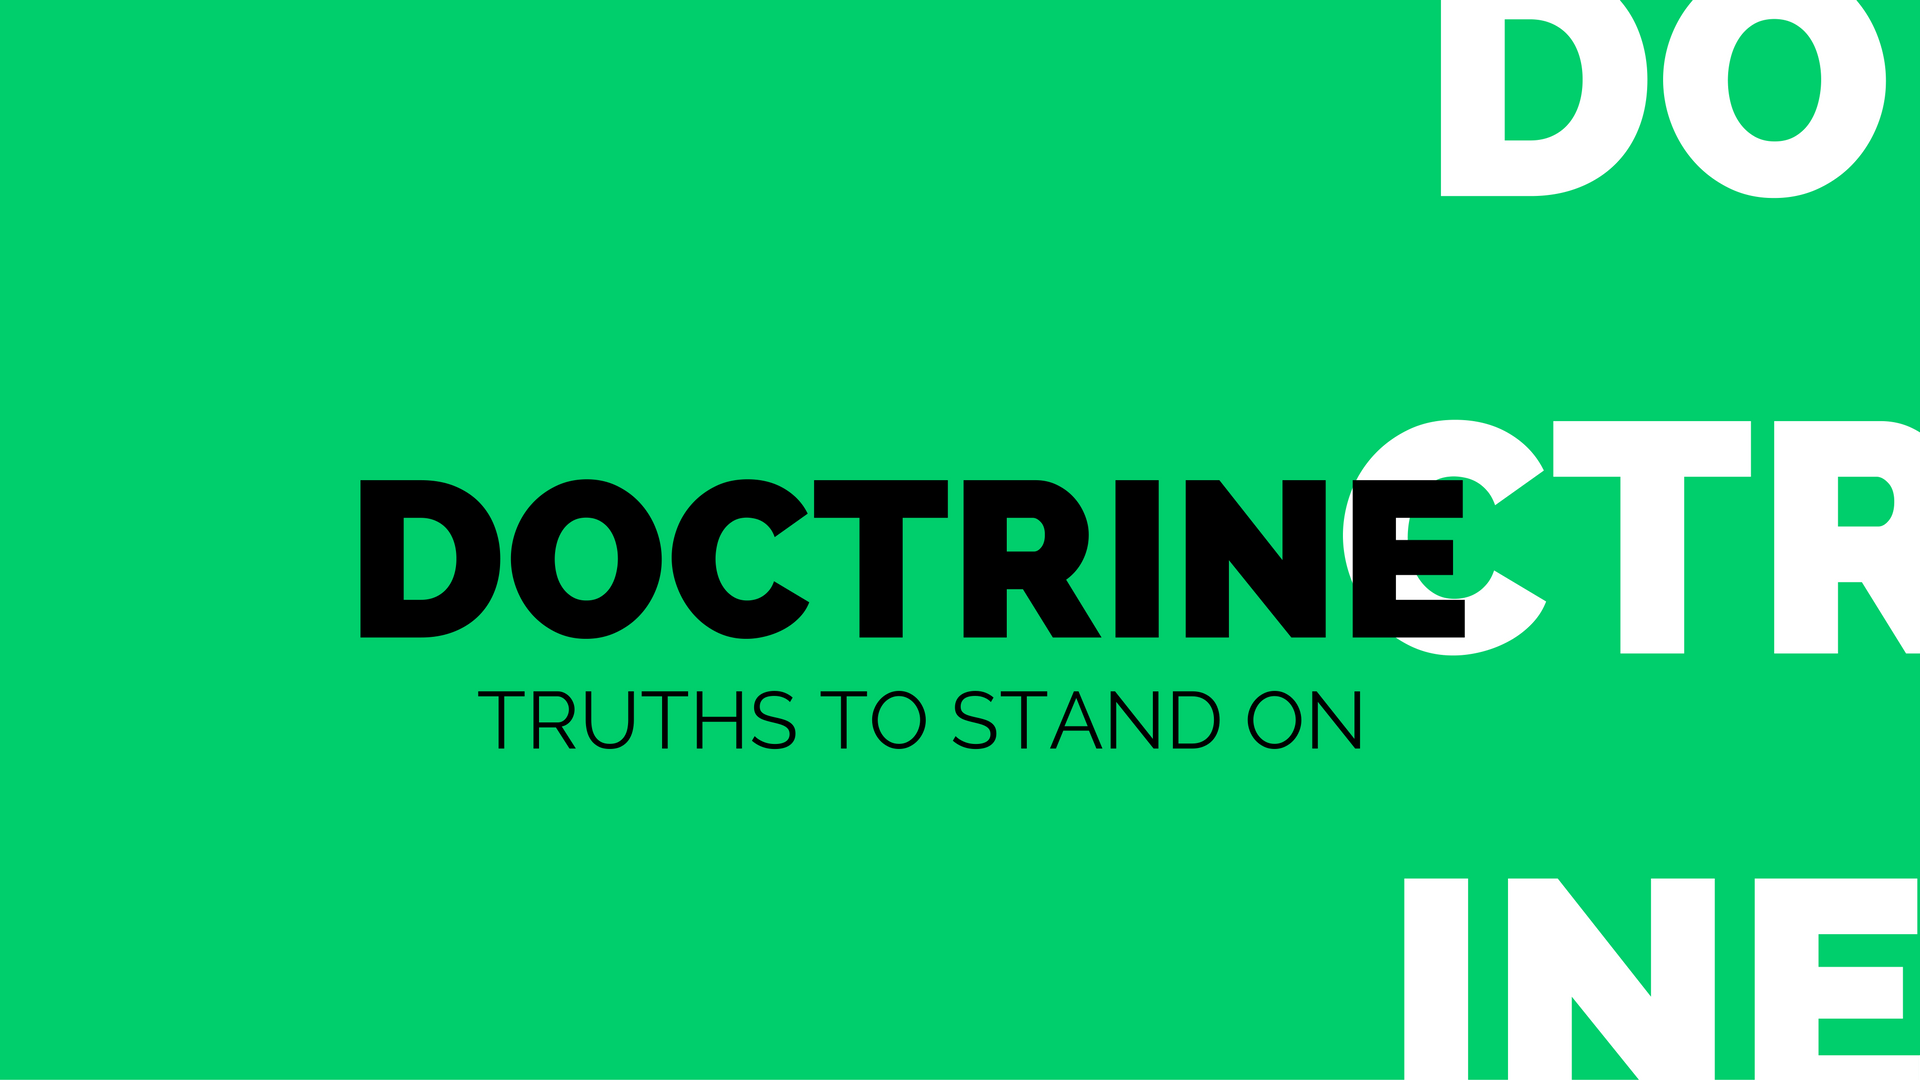 DOCTRINE (2) (1)-3-1-1-1-1-1.png